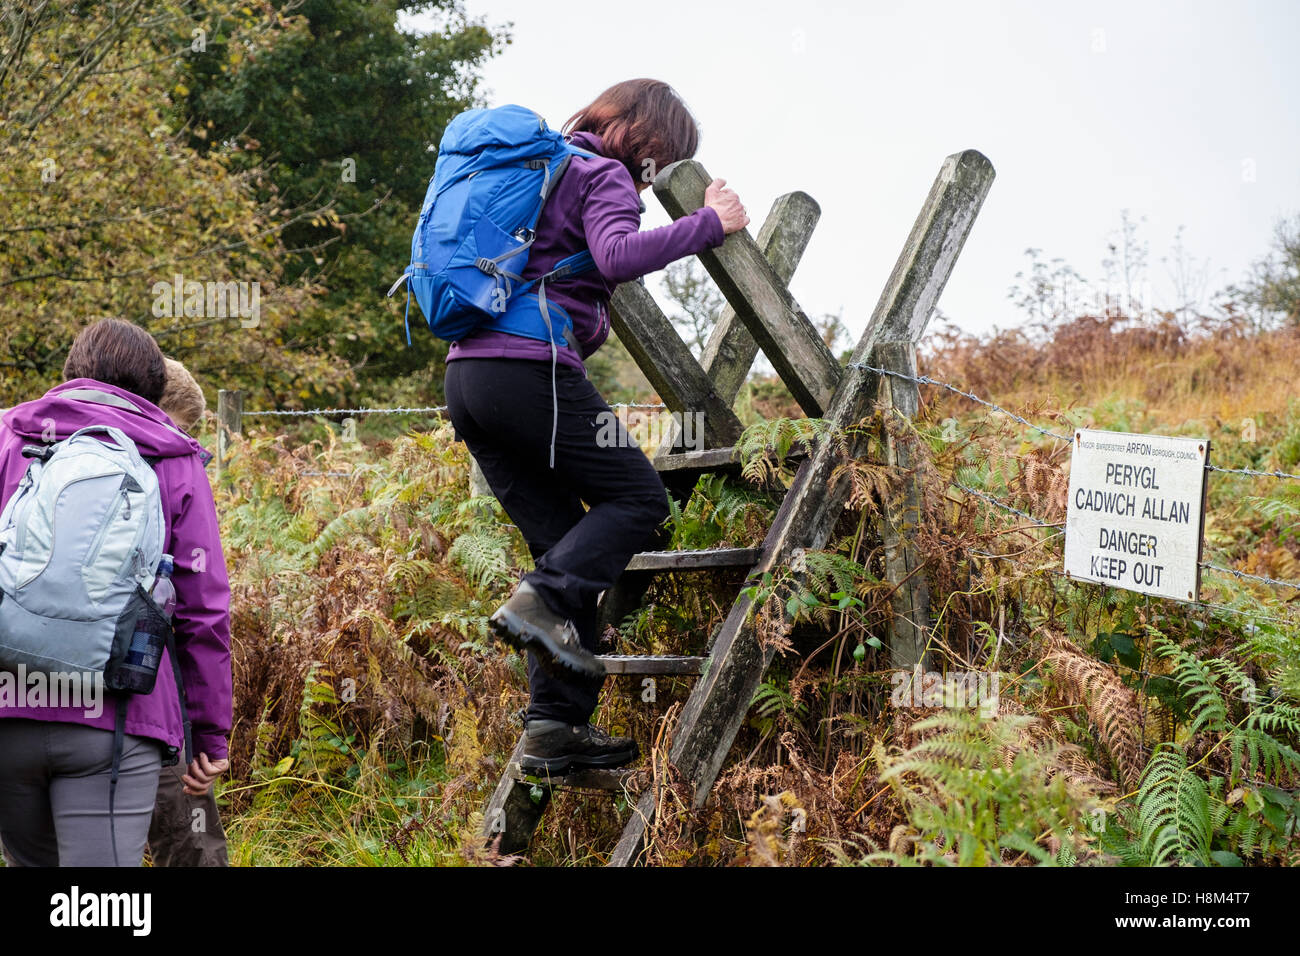 Bilingual 'Danger keep out' sign on a public footpath with hikers climbing a ladder stile over a barbed - Stock Image